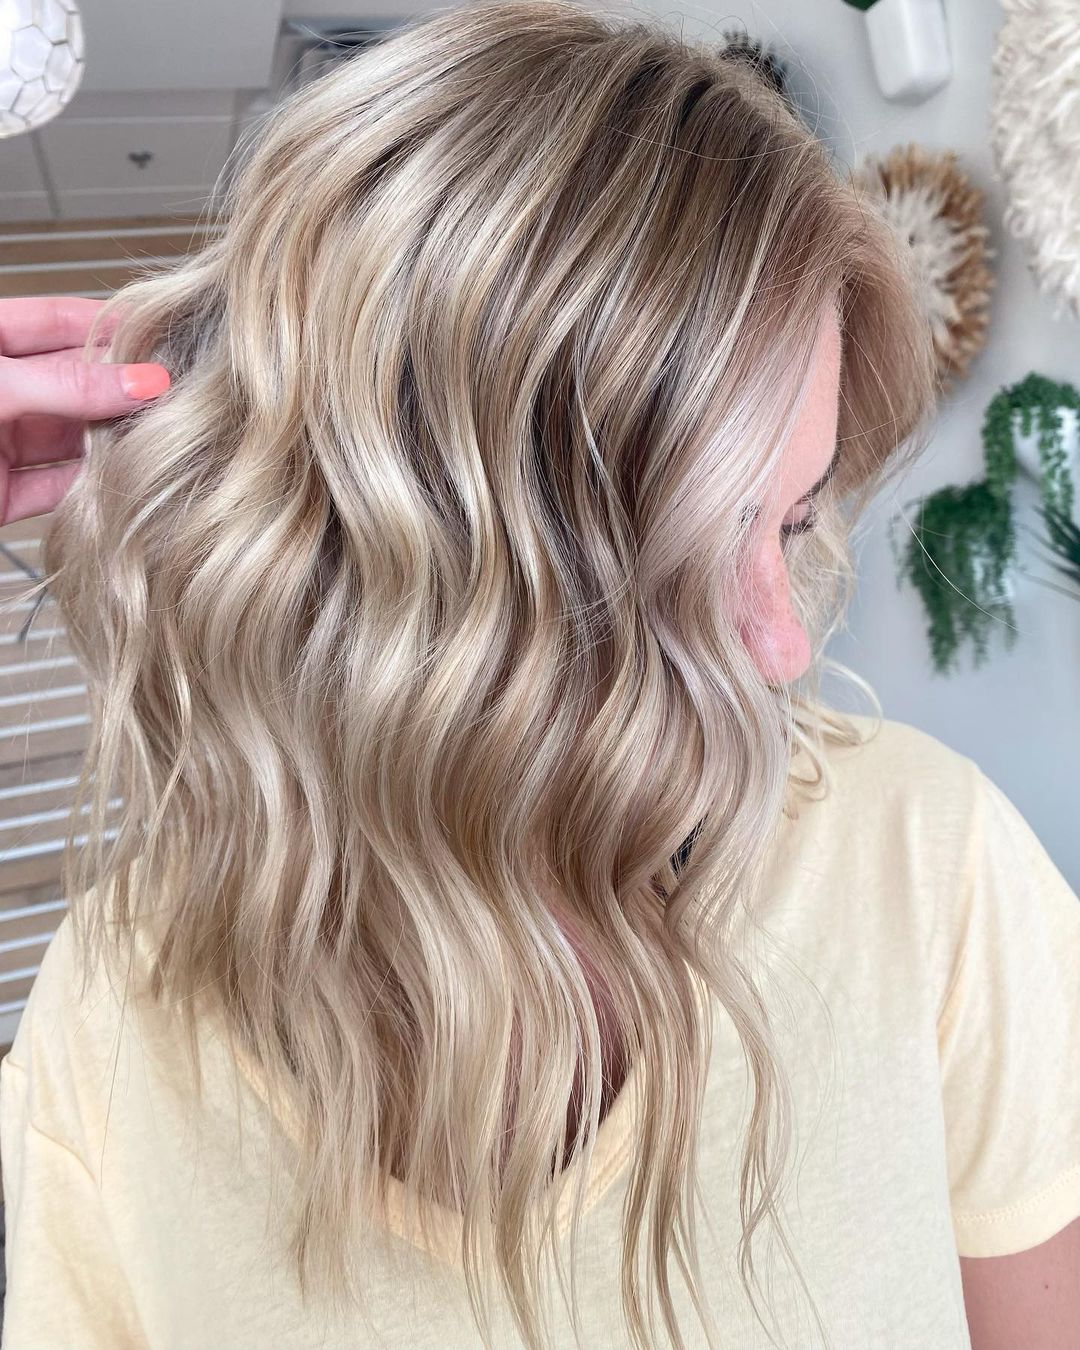 How to Make Blonde Hair Shiny